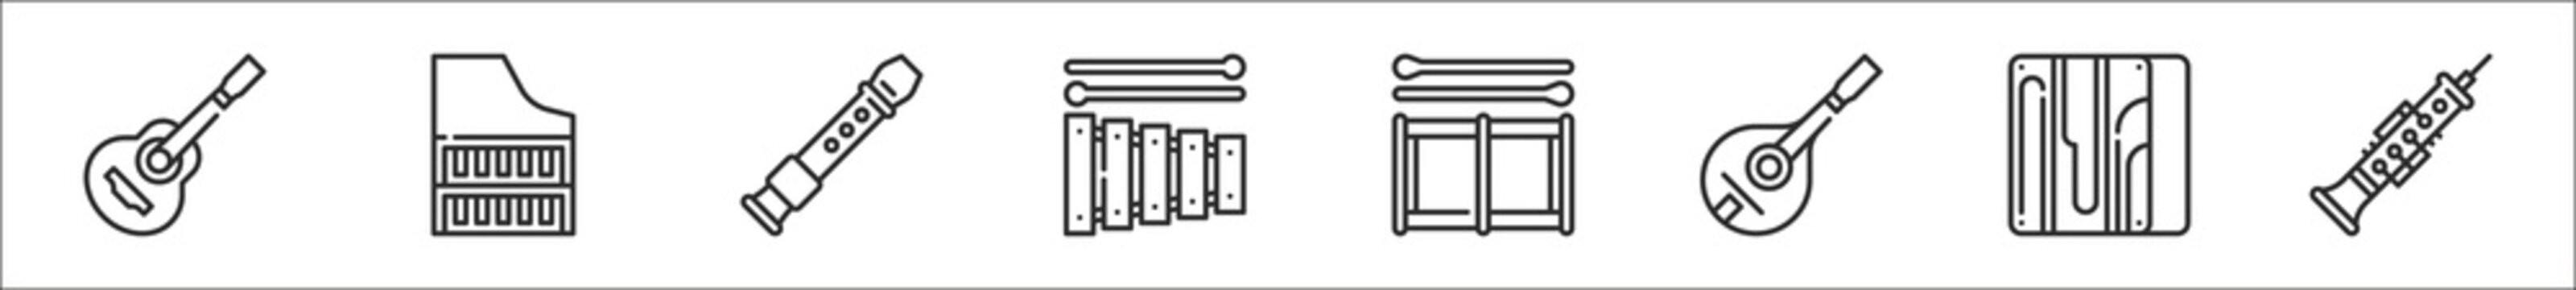 set of 8 music instruments thin outline icons such as spanish guitar, harpsichord, flute, xylophone, drum, mandolin, cajon, oboe